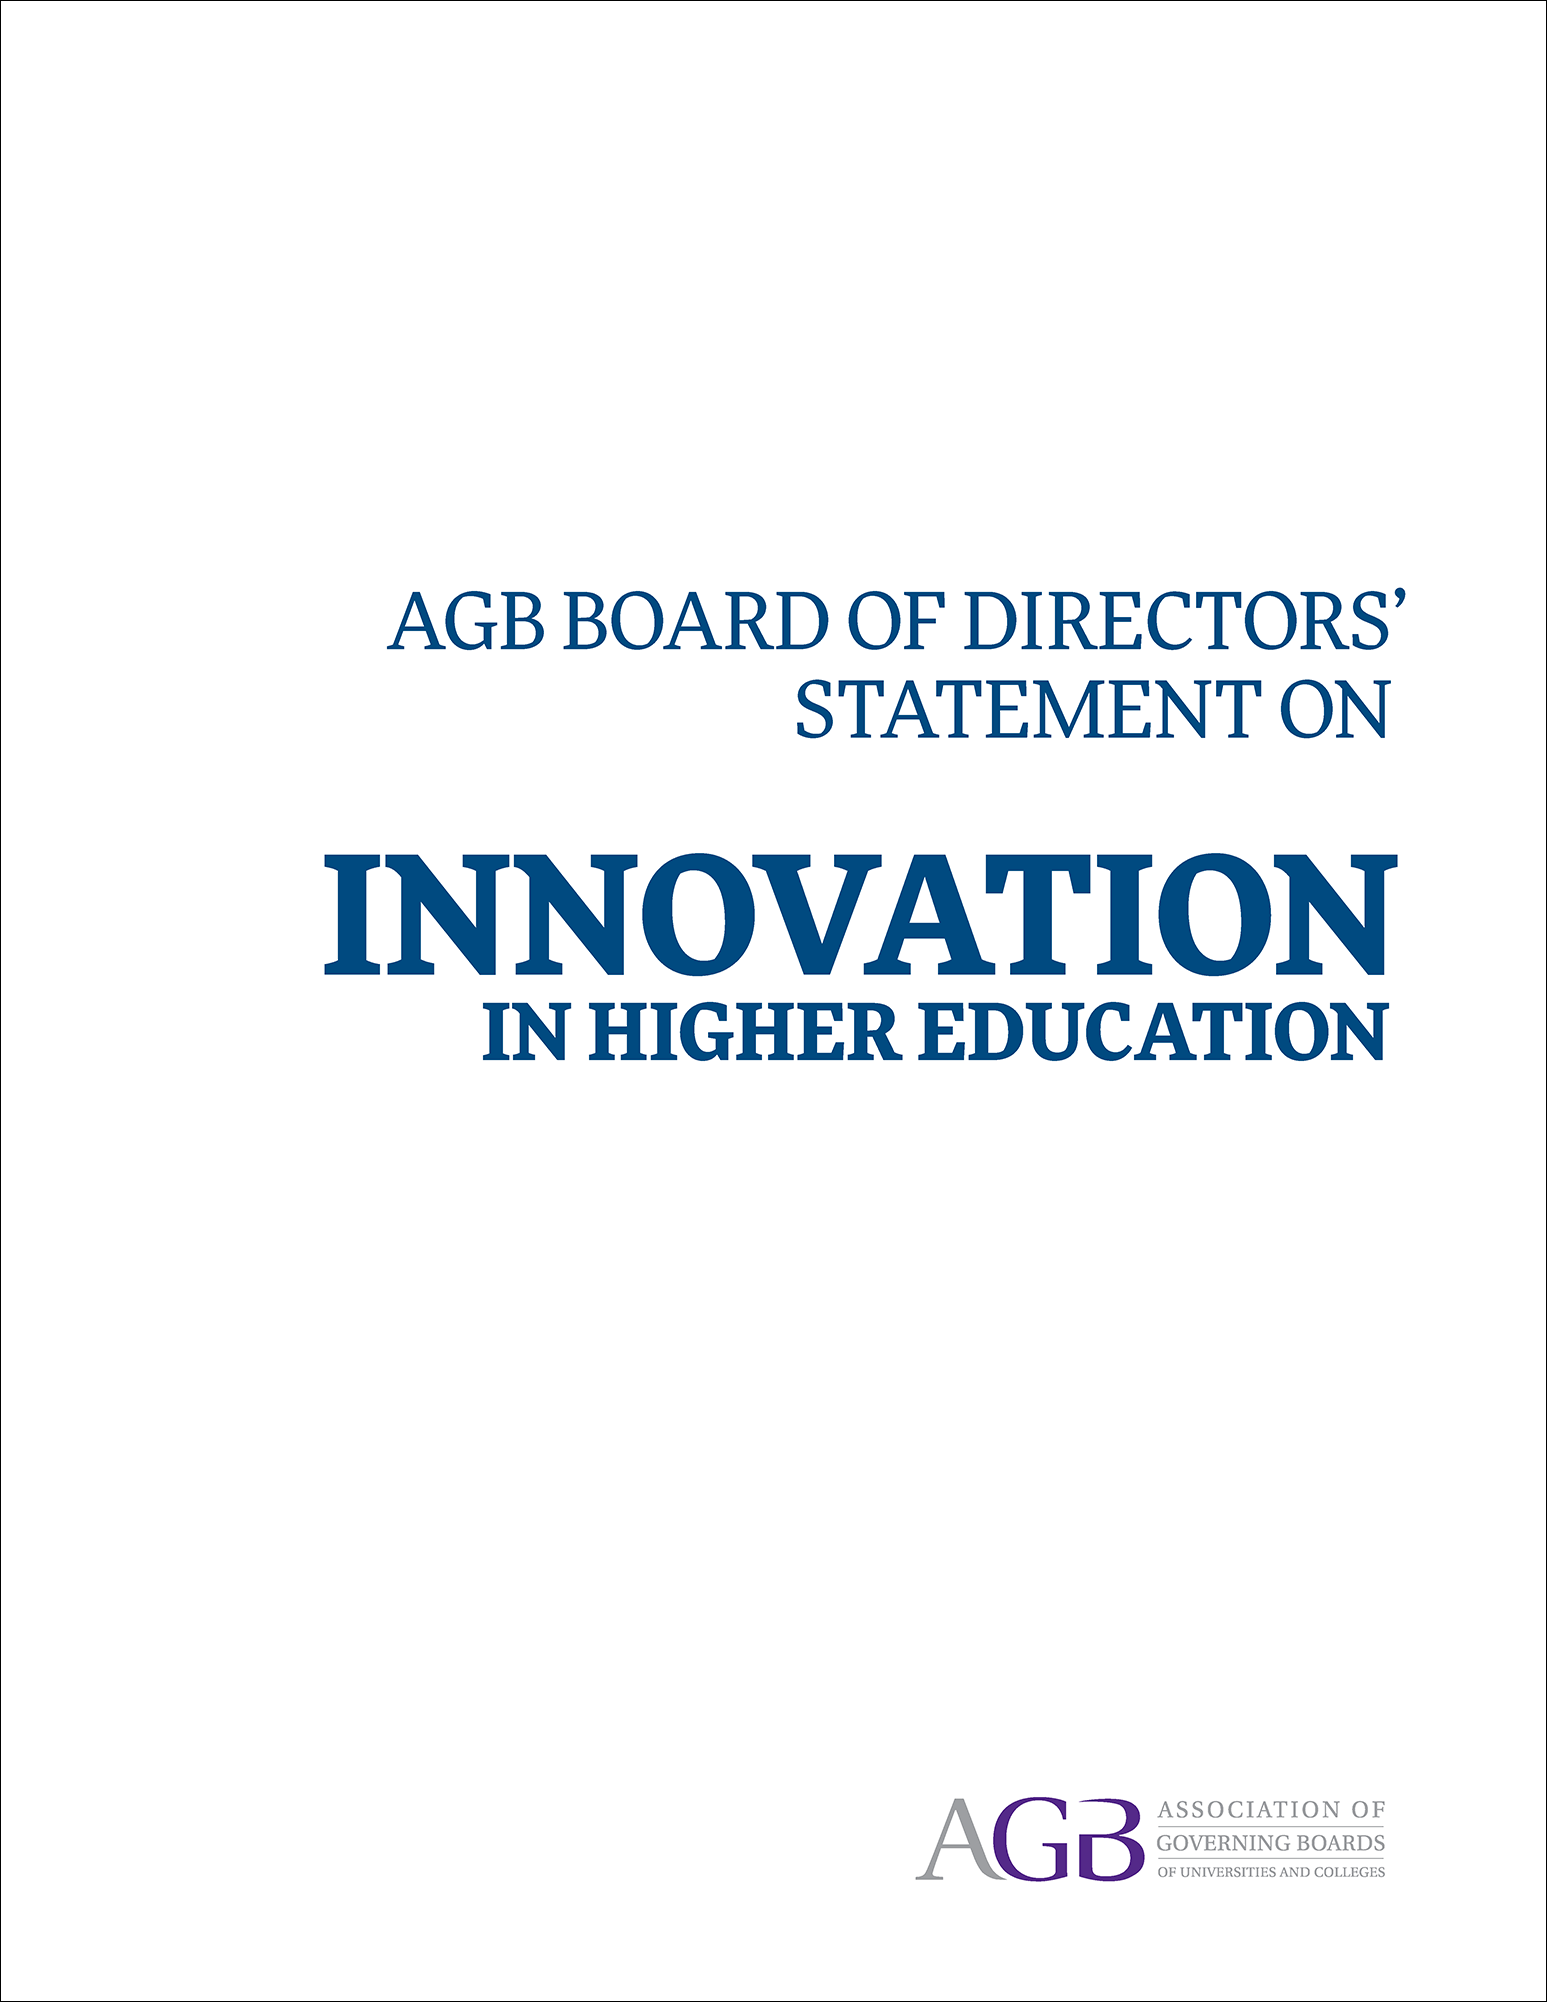 AGB Board of Directors' Statement on Innovation in Higher Education